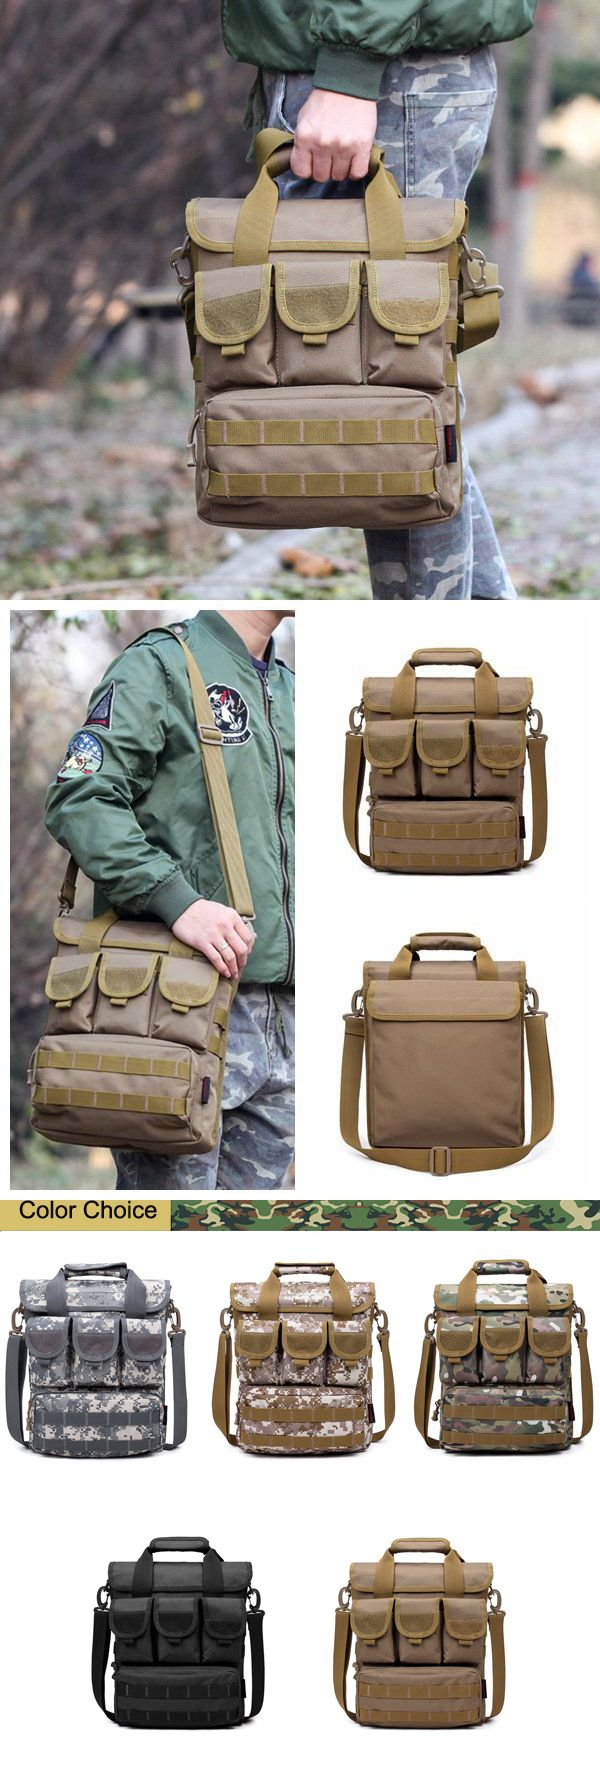 034d5a1a0 Outdoor Outfit: Casual Crossbody Bag / Sports Multi Pocket Bag For Men